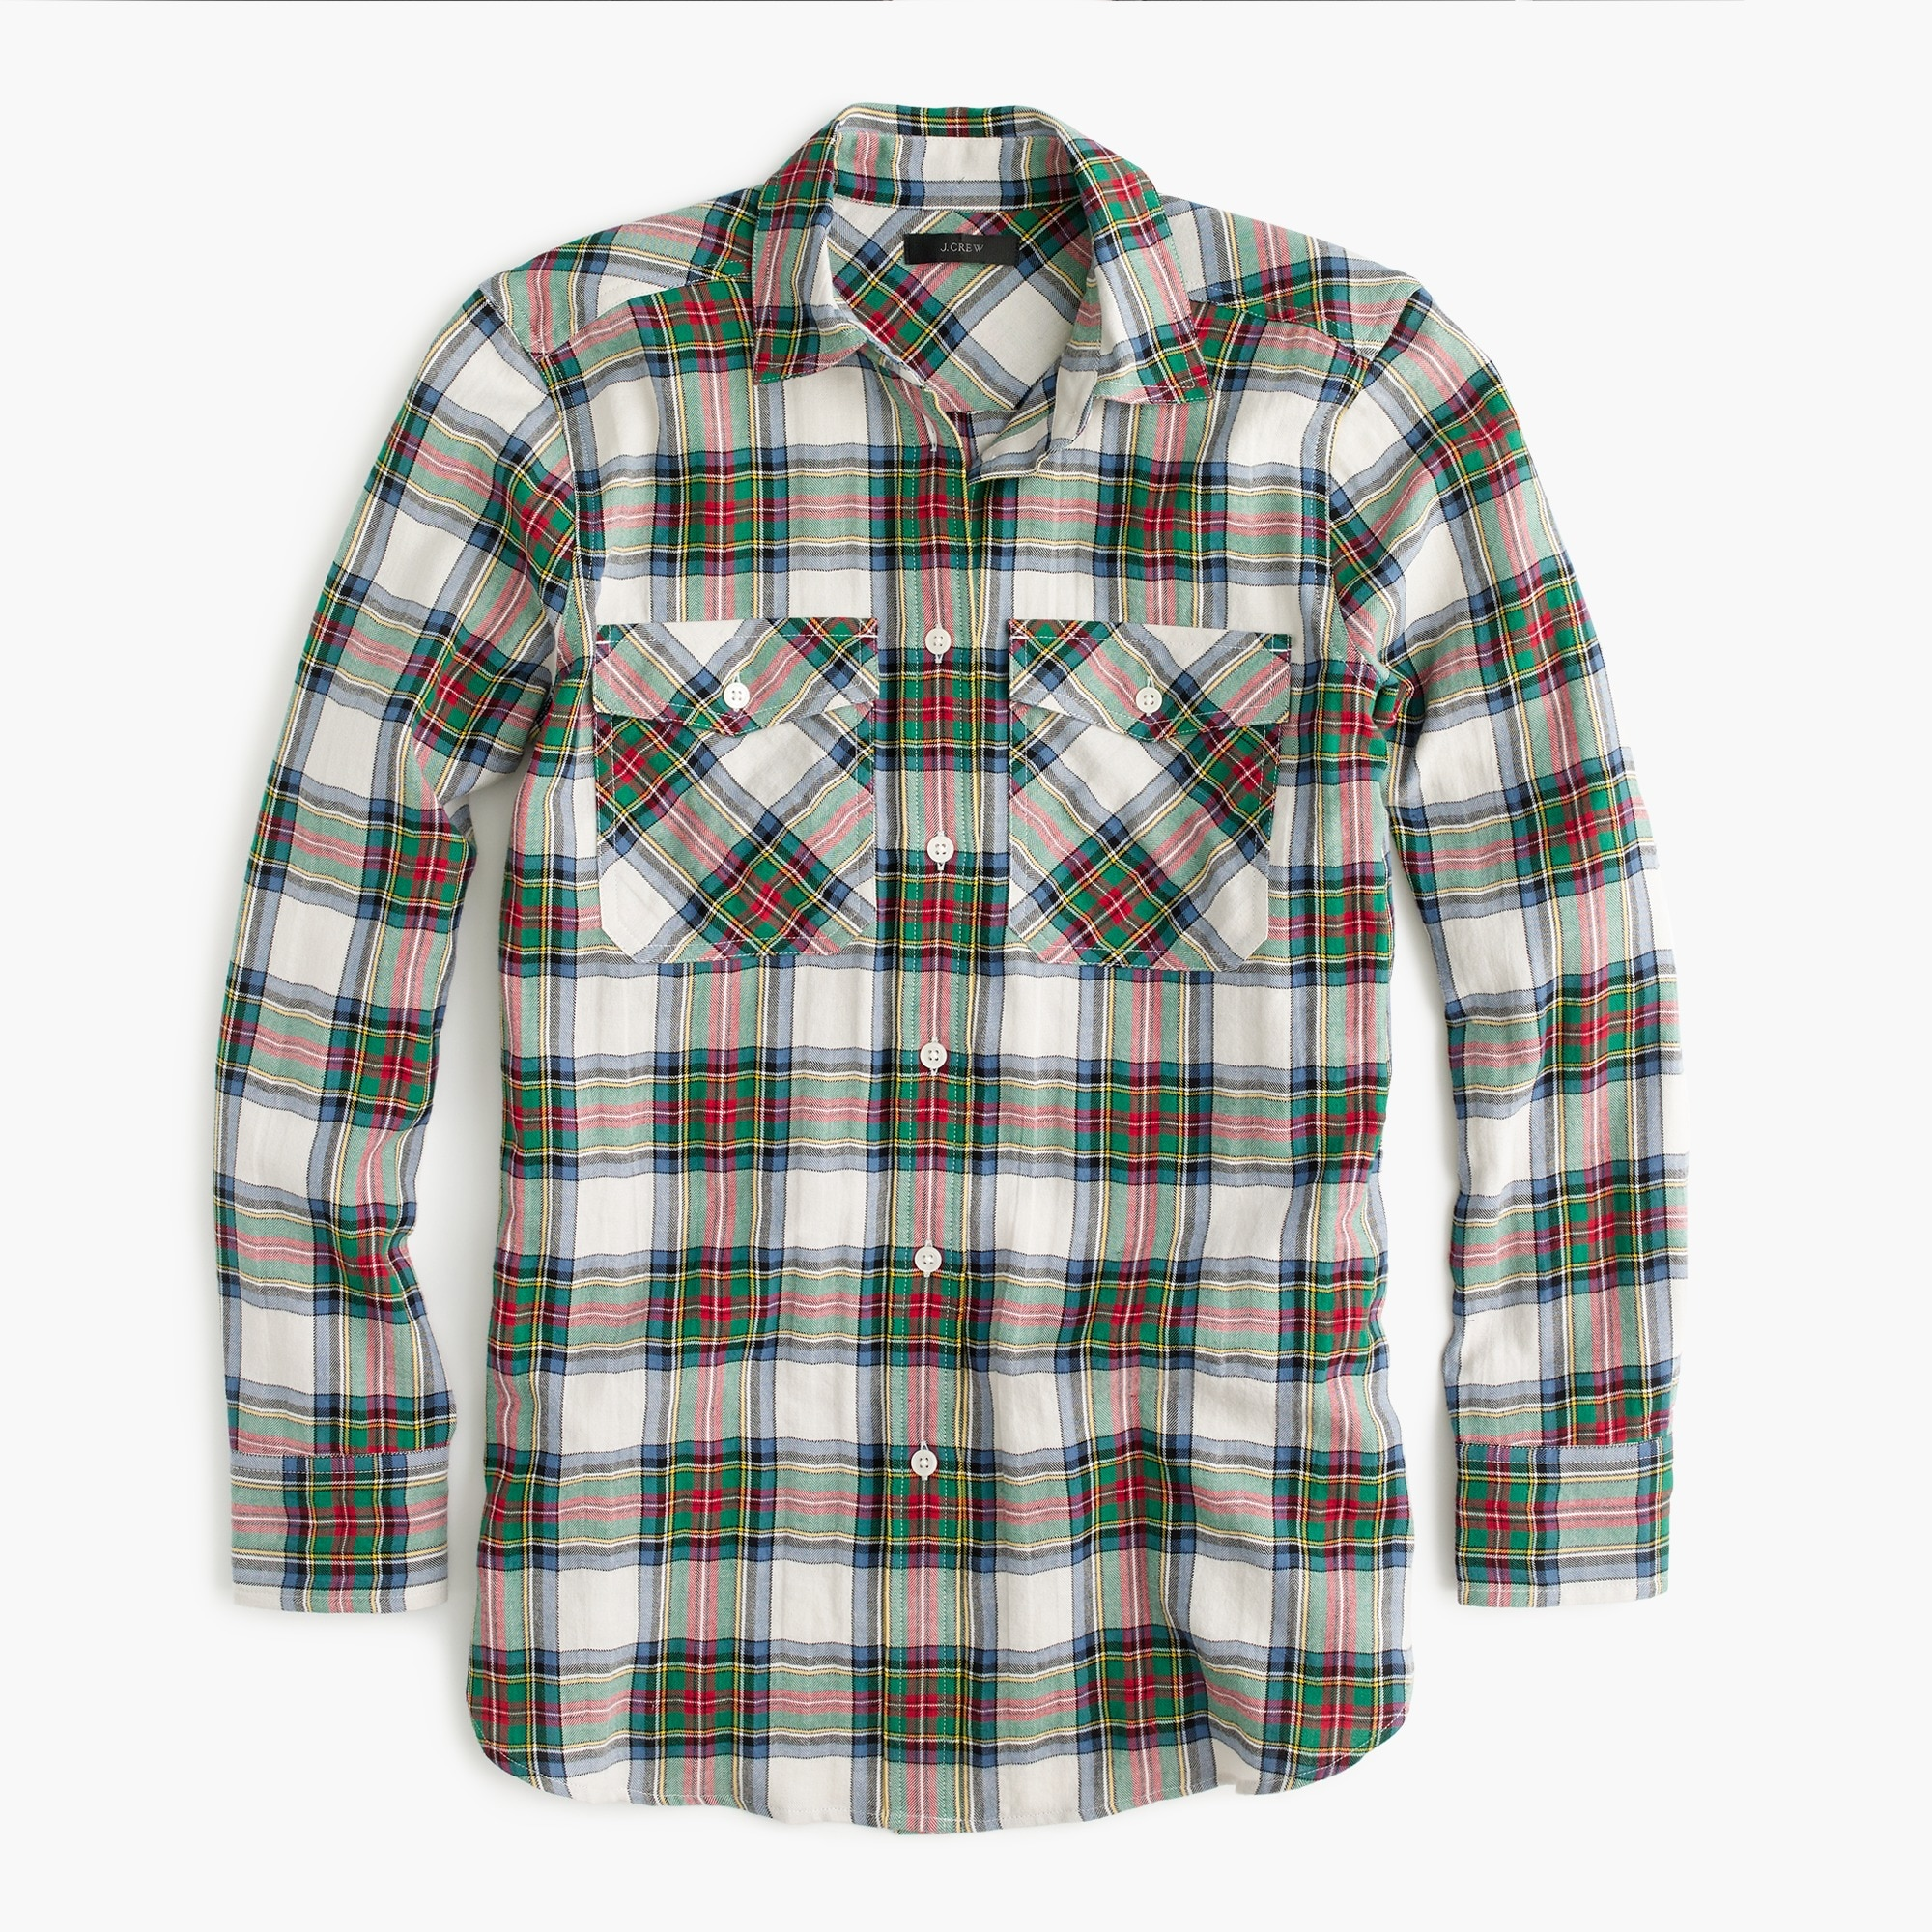 Image 6 for Oversized button-up shirt in Stewart tartan